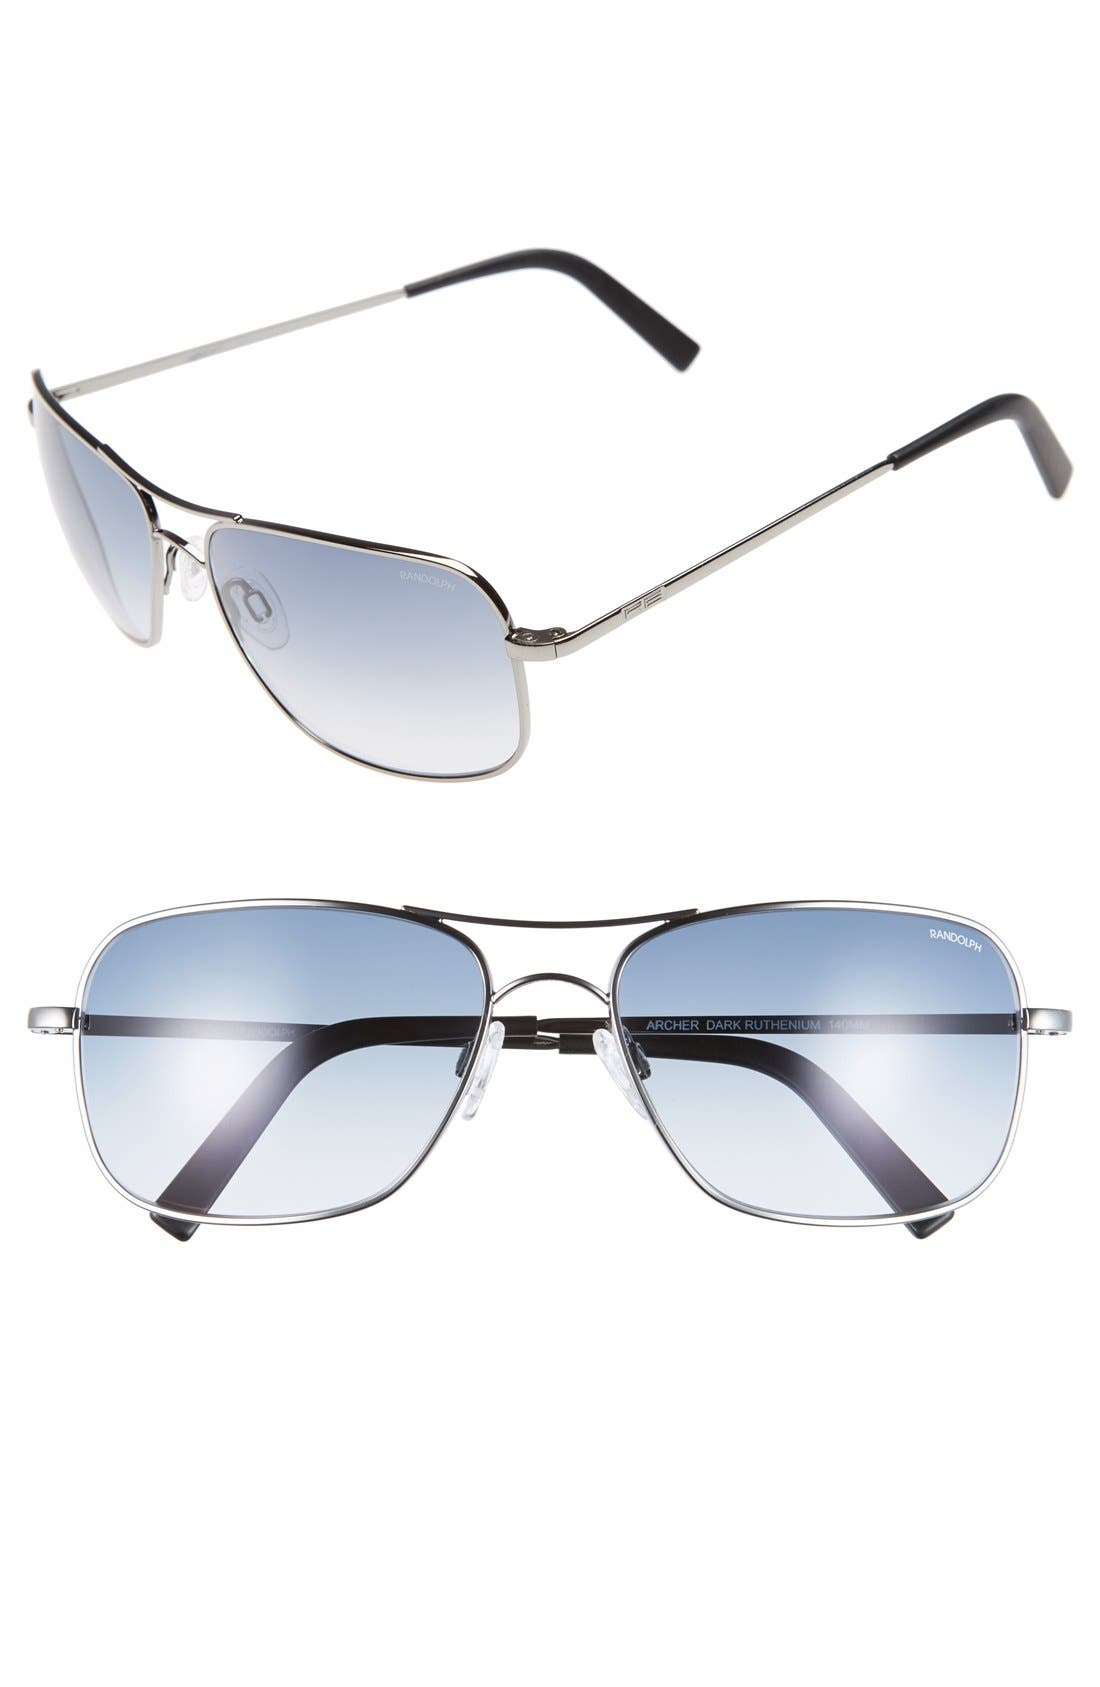 Alternate Image 1 Selected - Randolph Engineering 'Archer' 59mm Sunglasses